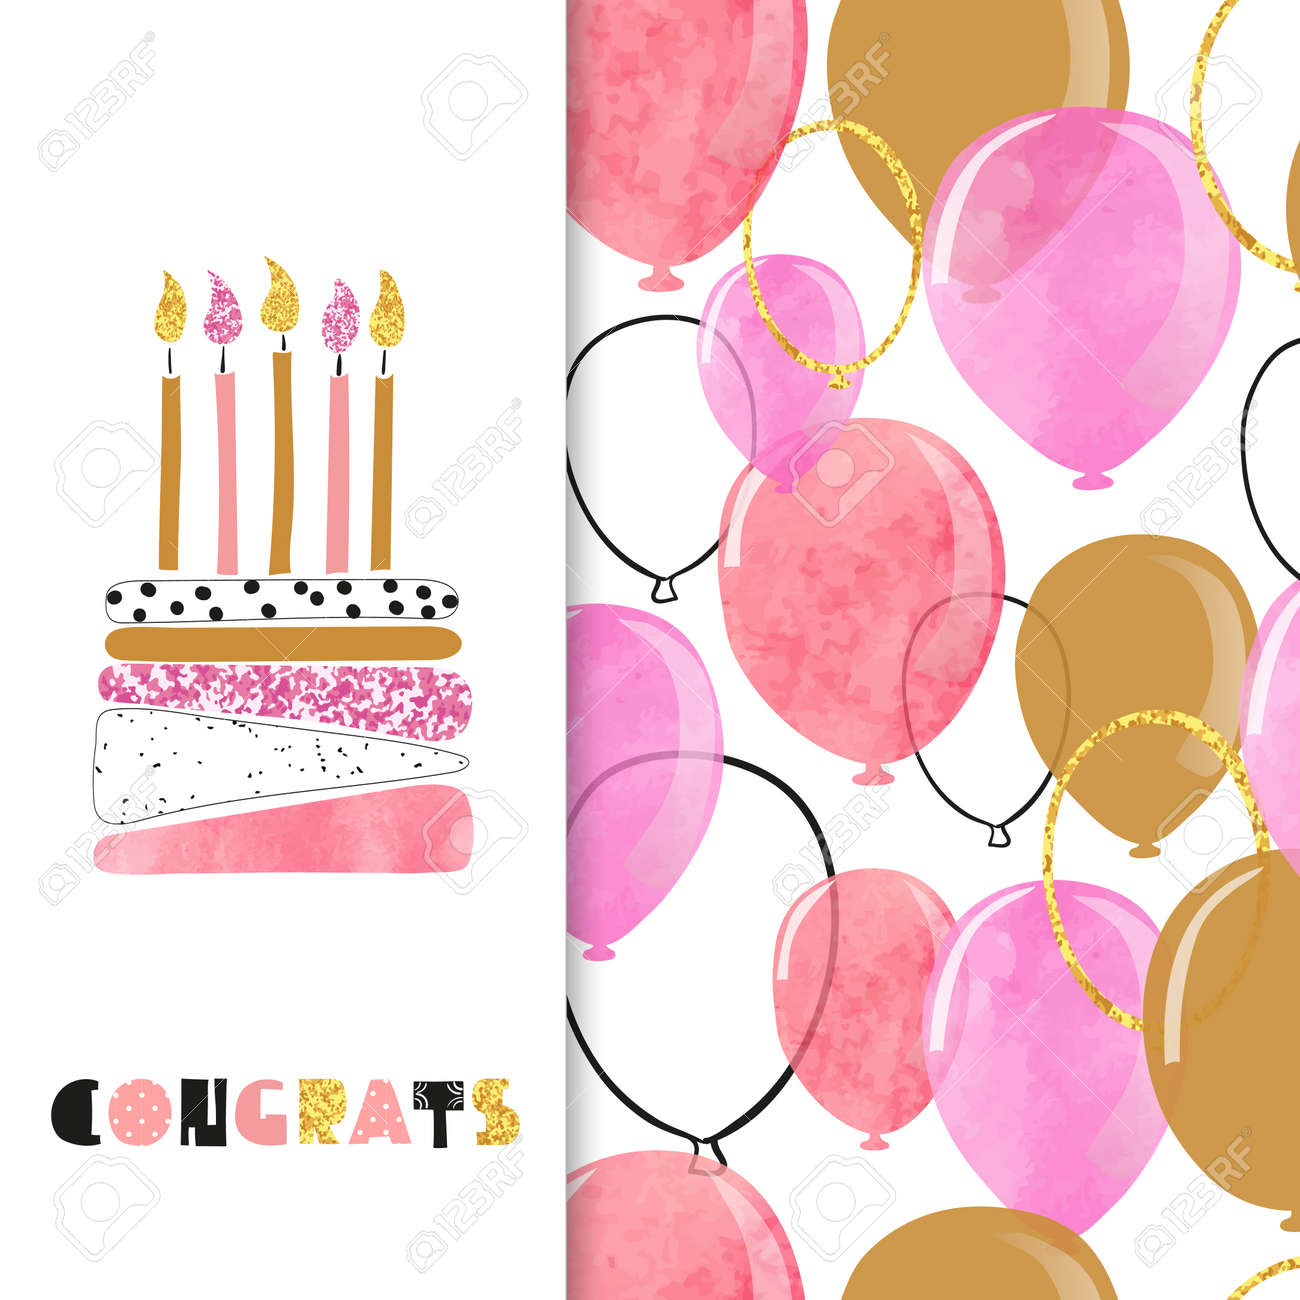 Watercolor Birthday Greeting Card Design In Pink And Golden Colors